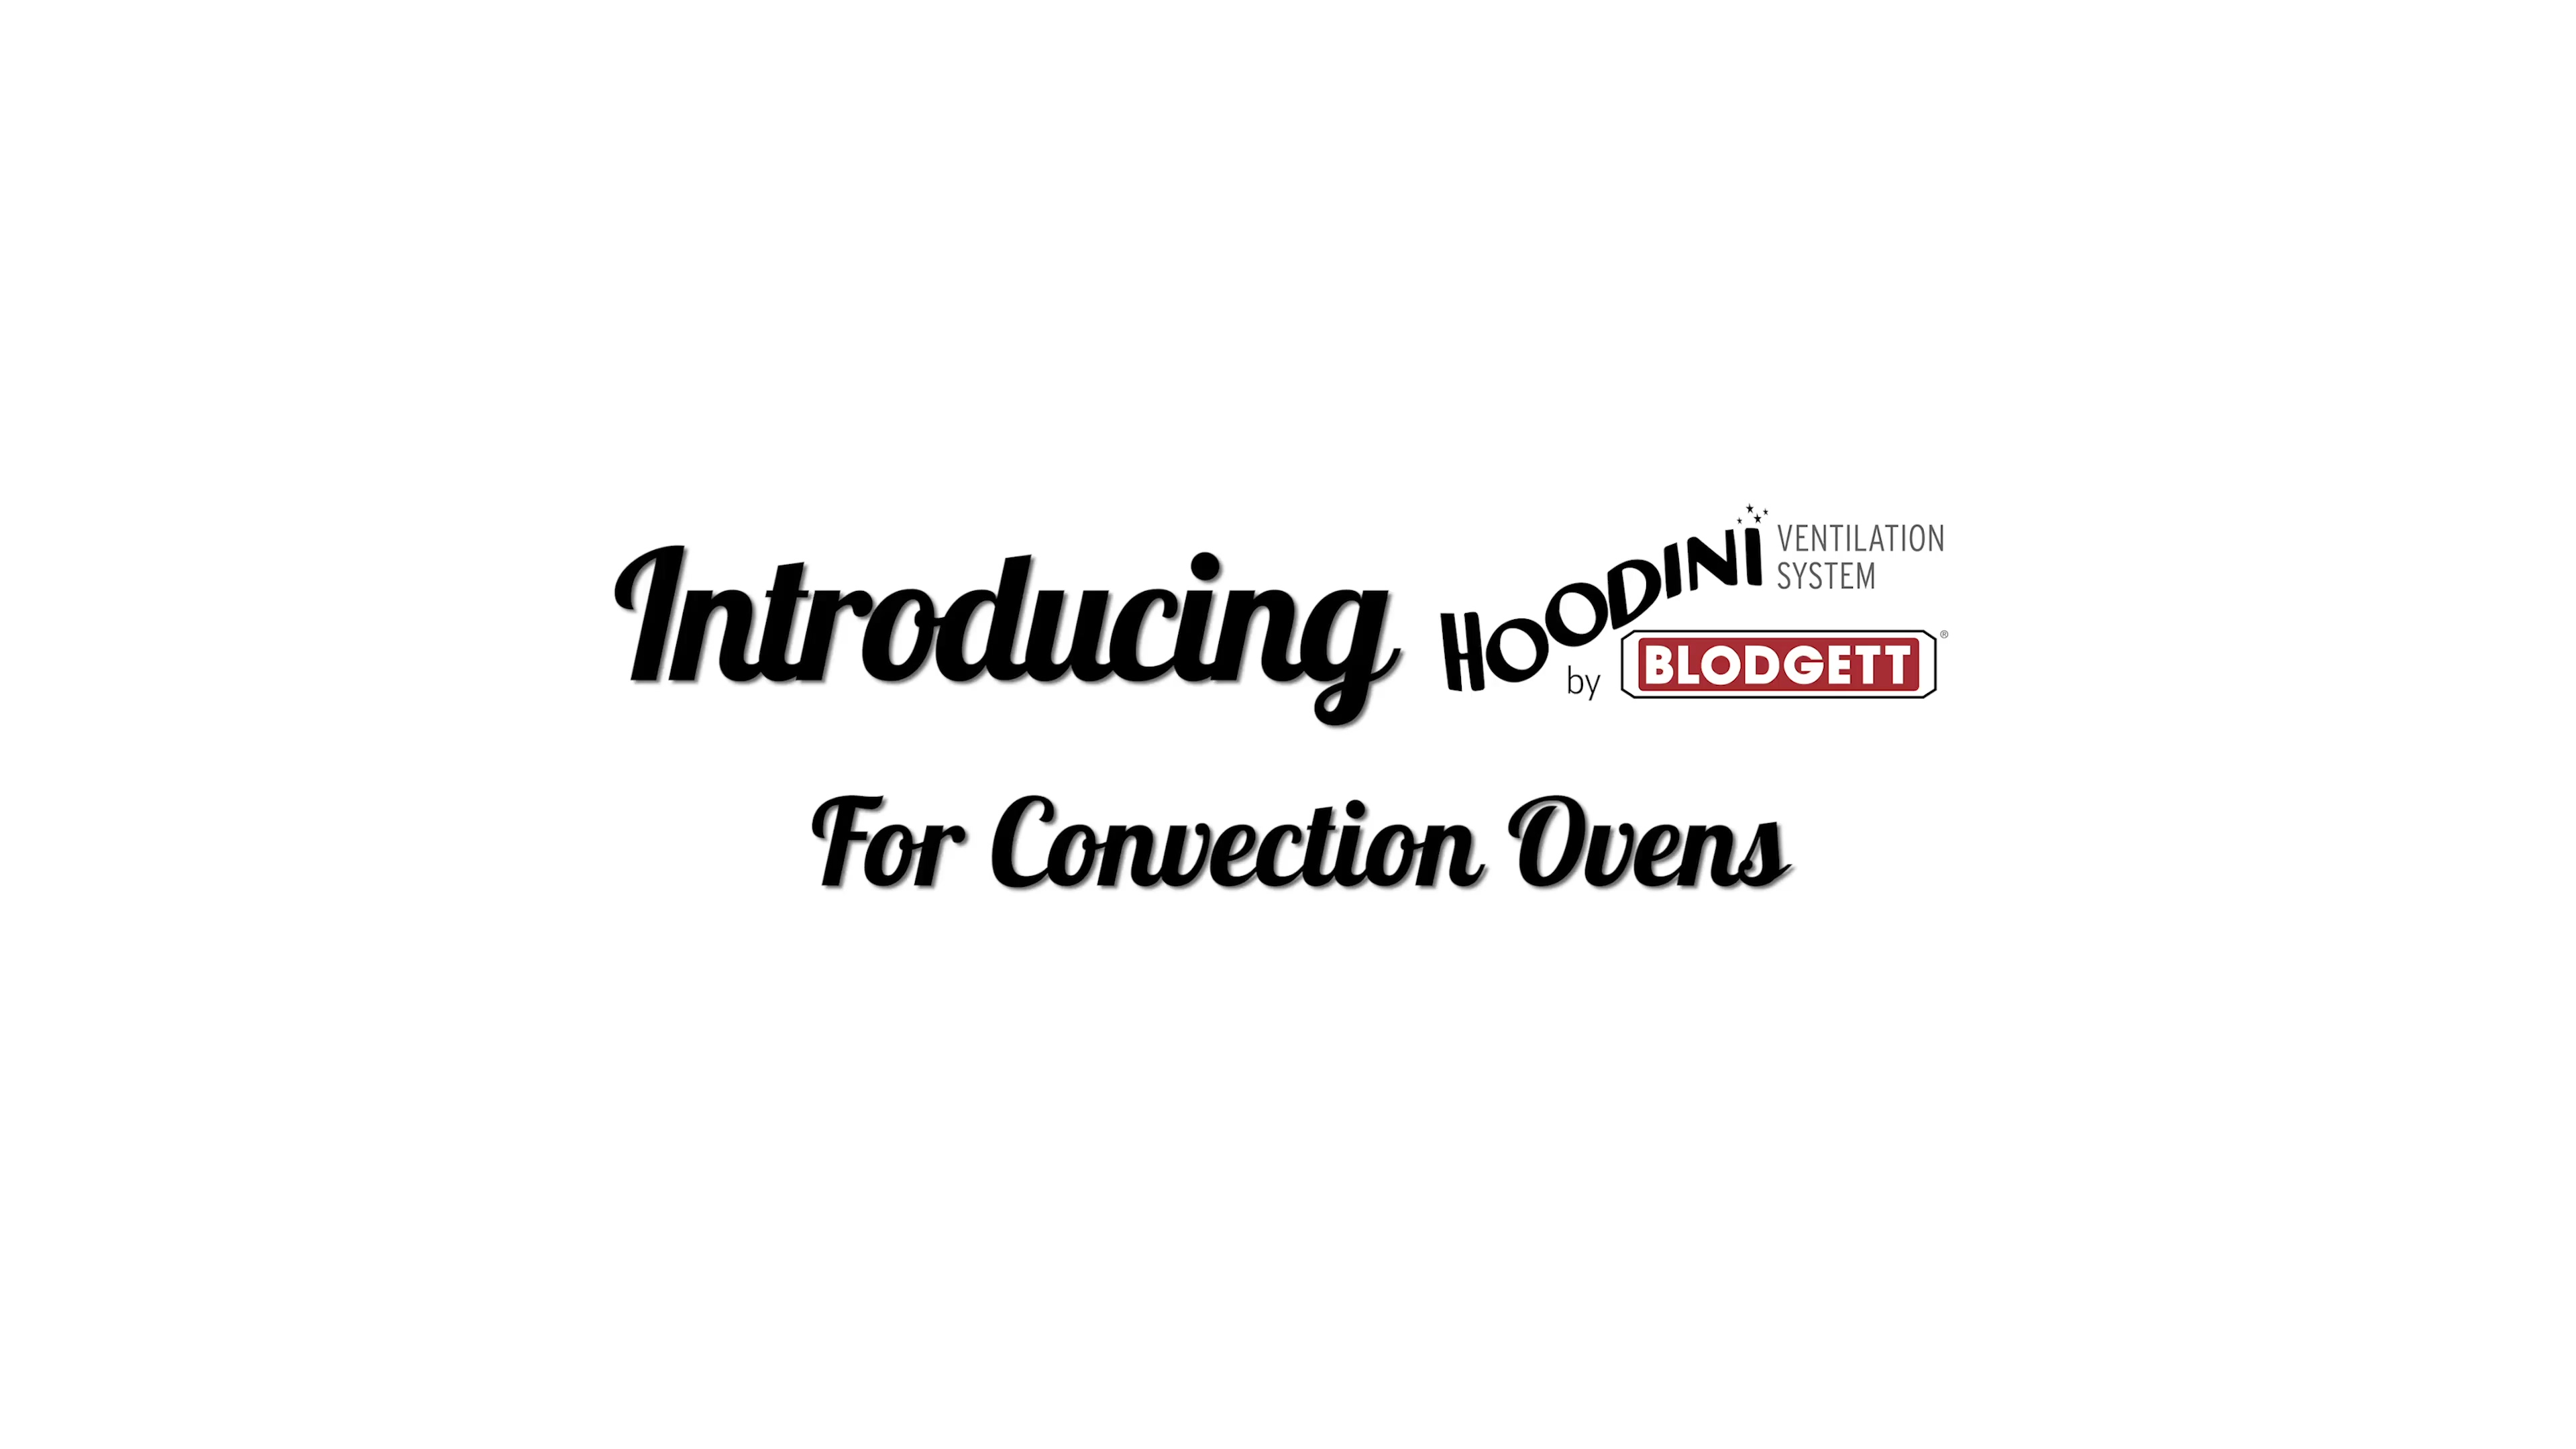 Introducing Hoodini Ventless Solutions For Convection Ovens (FINAL) (SPELL CHECKED)